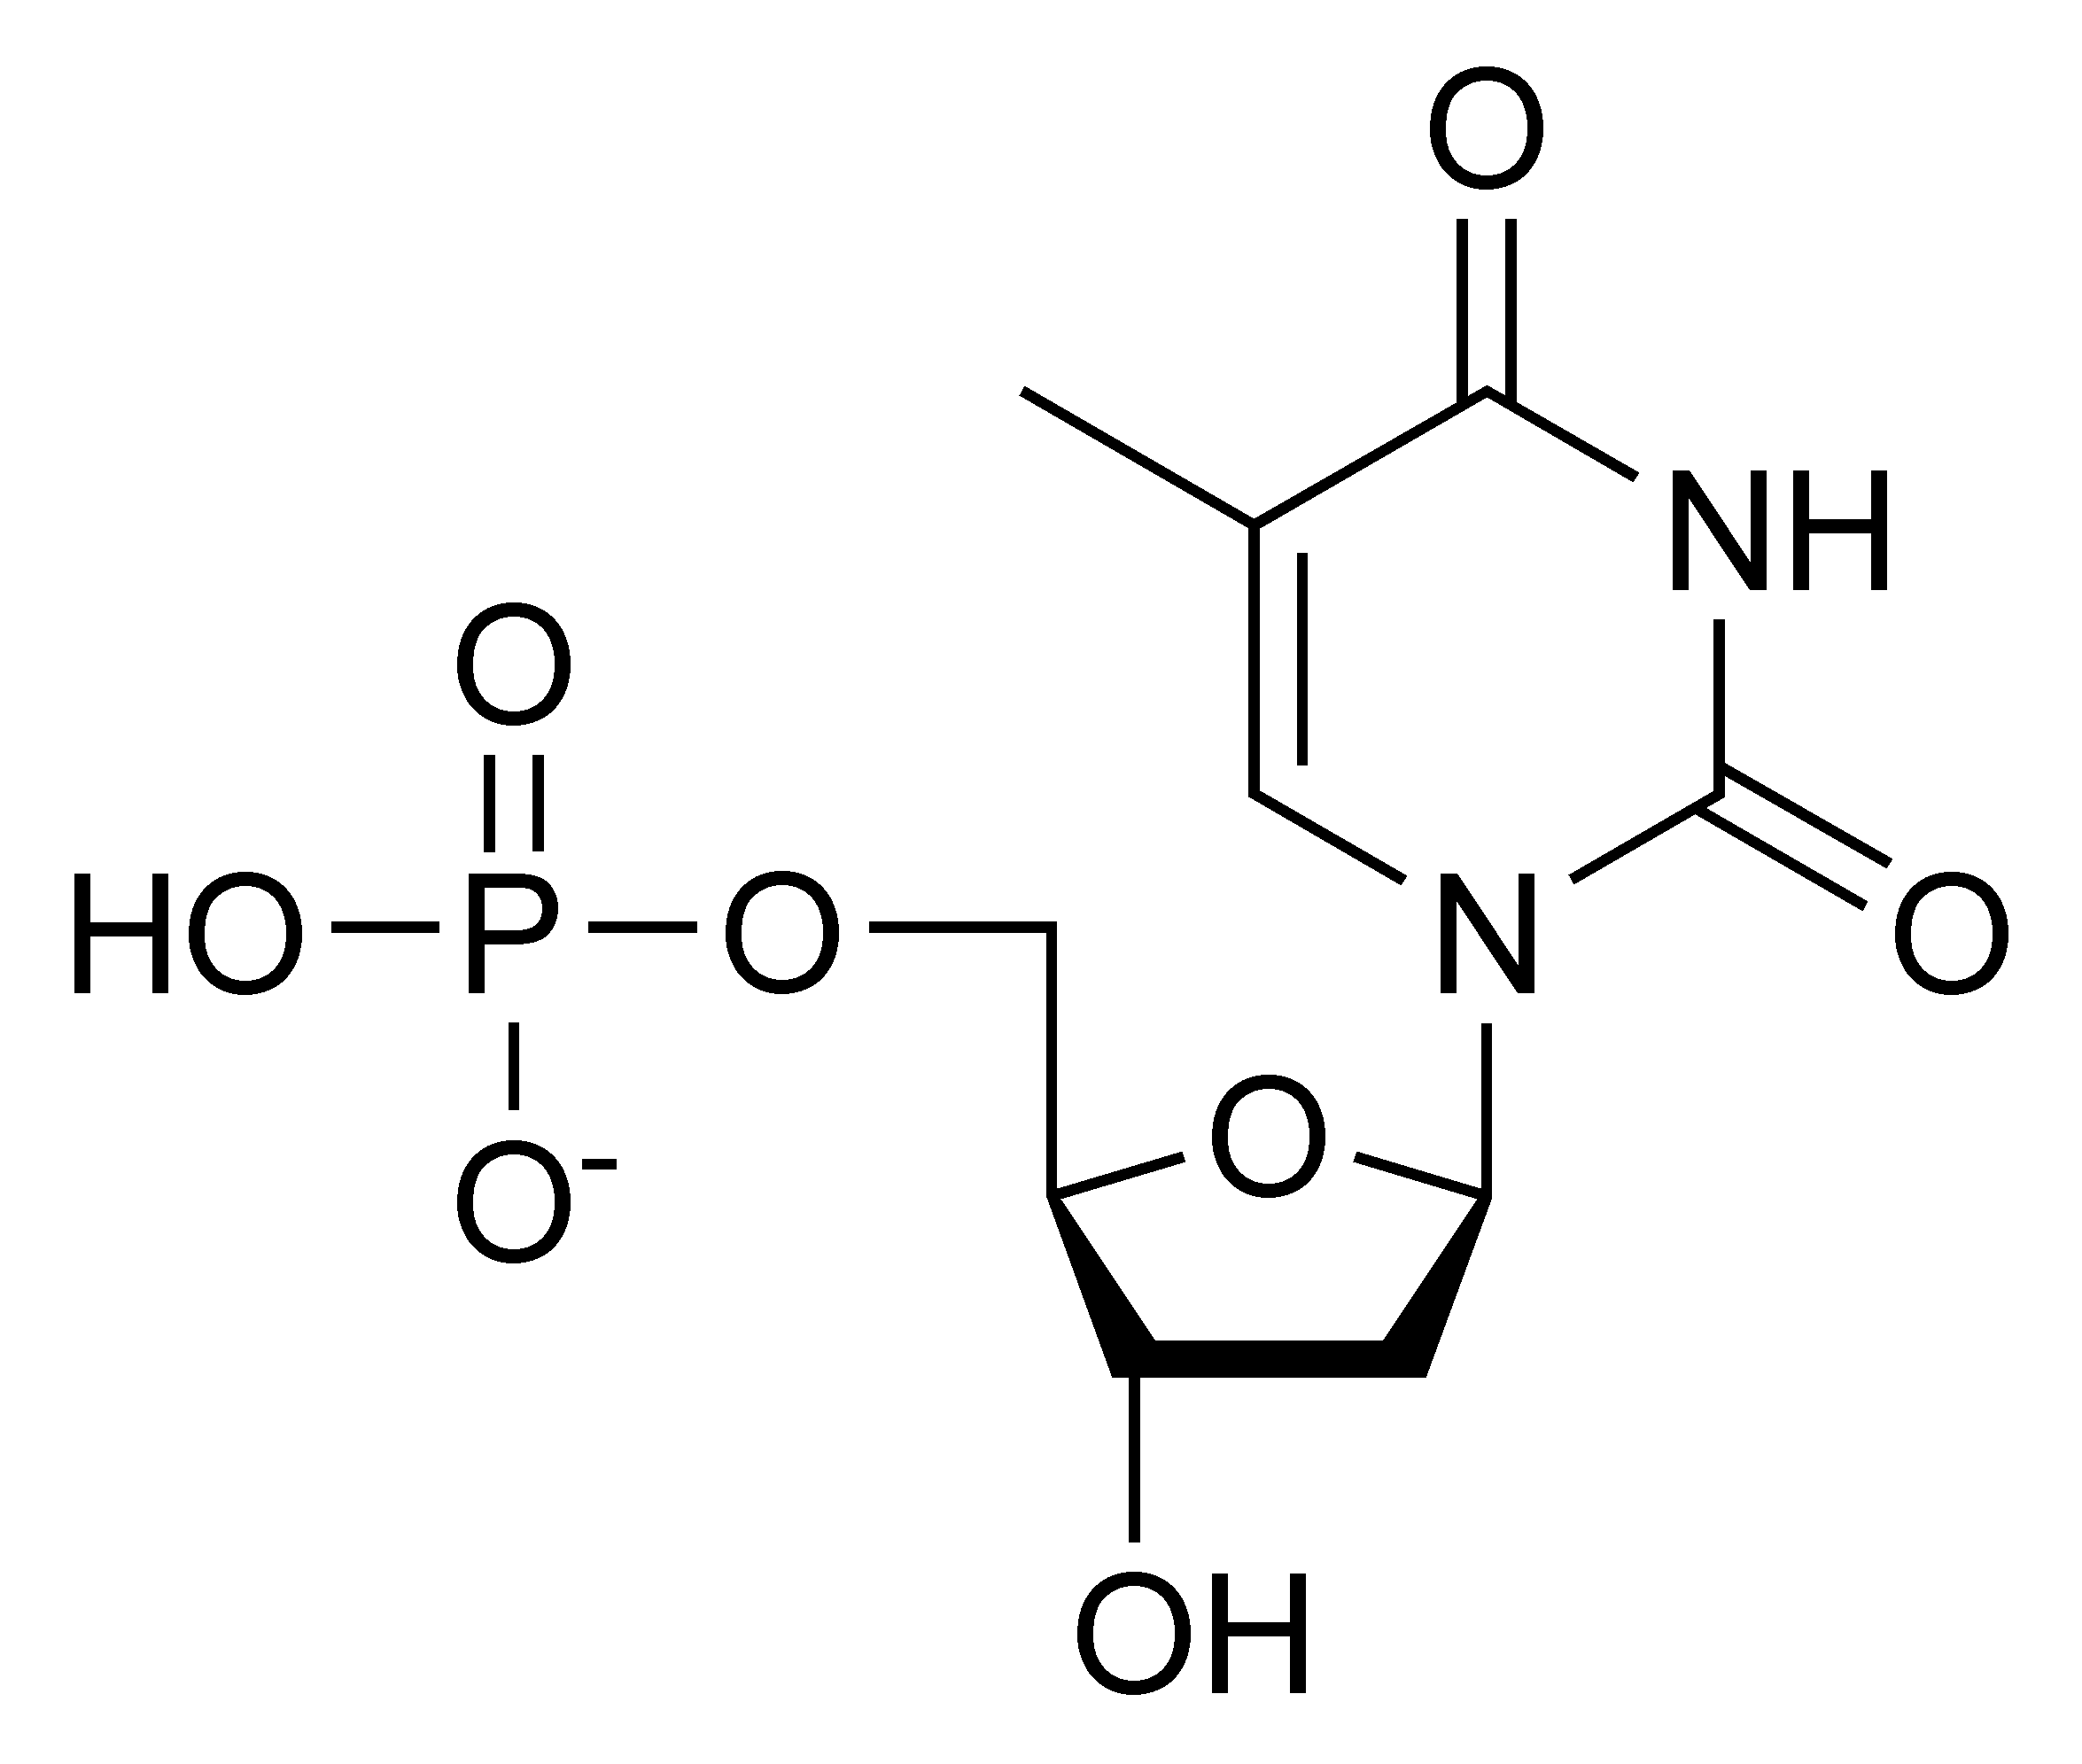 Chemical structure of deoxythymidine monophosphate